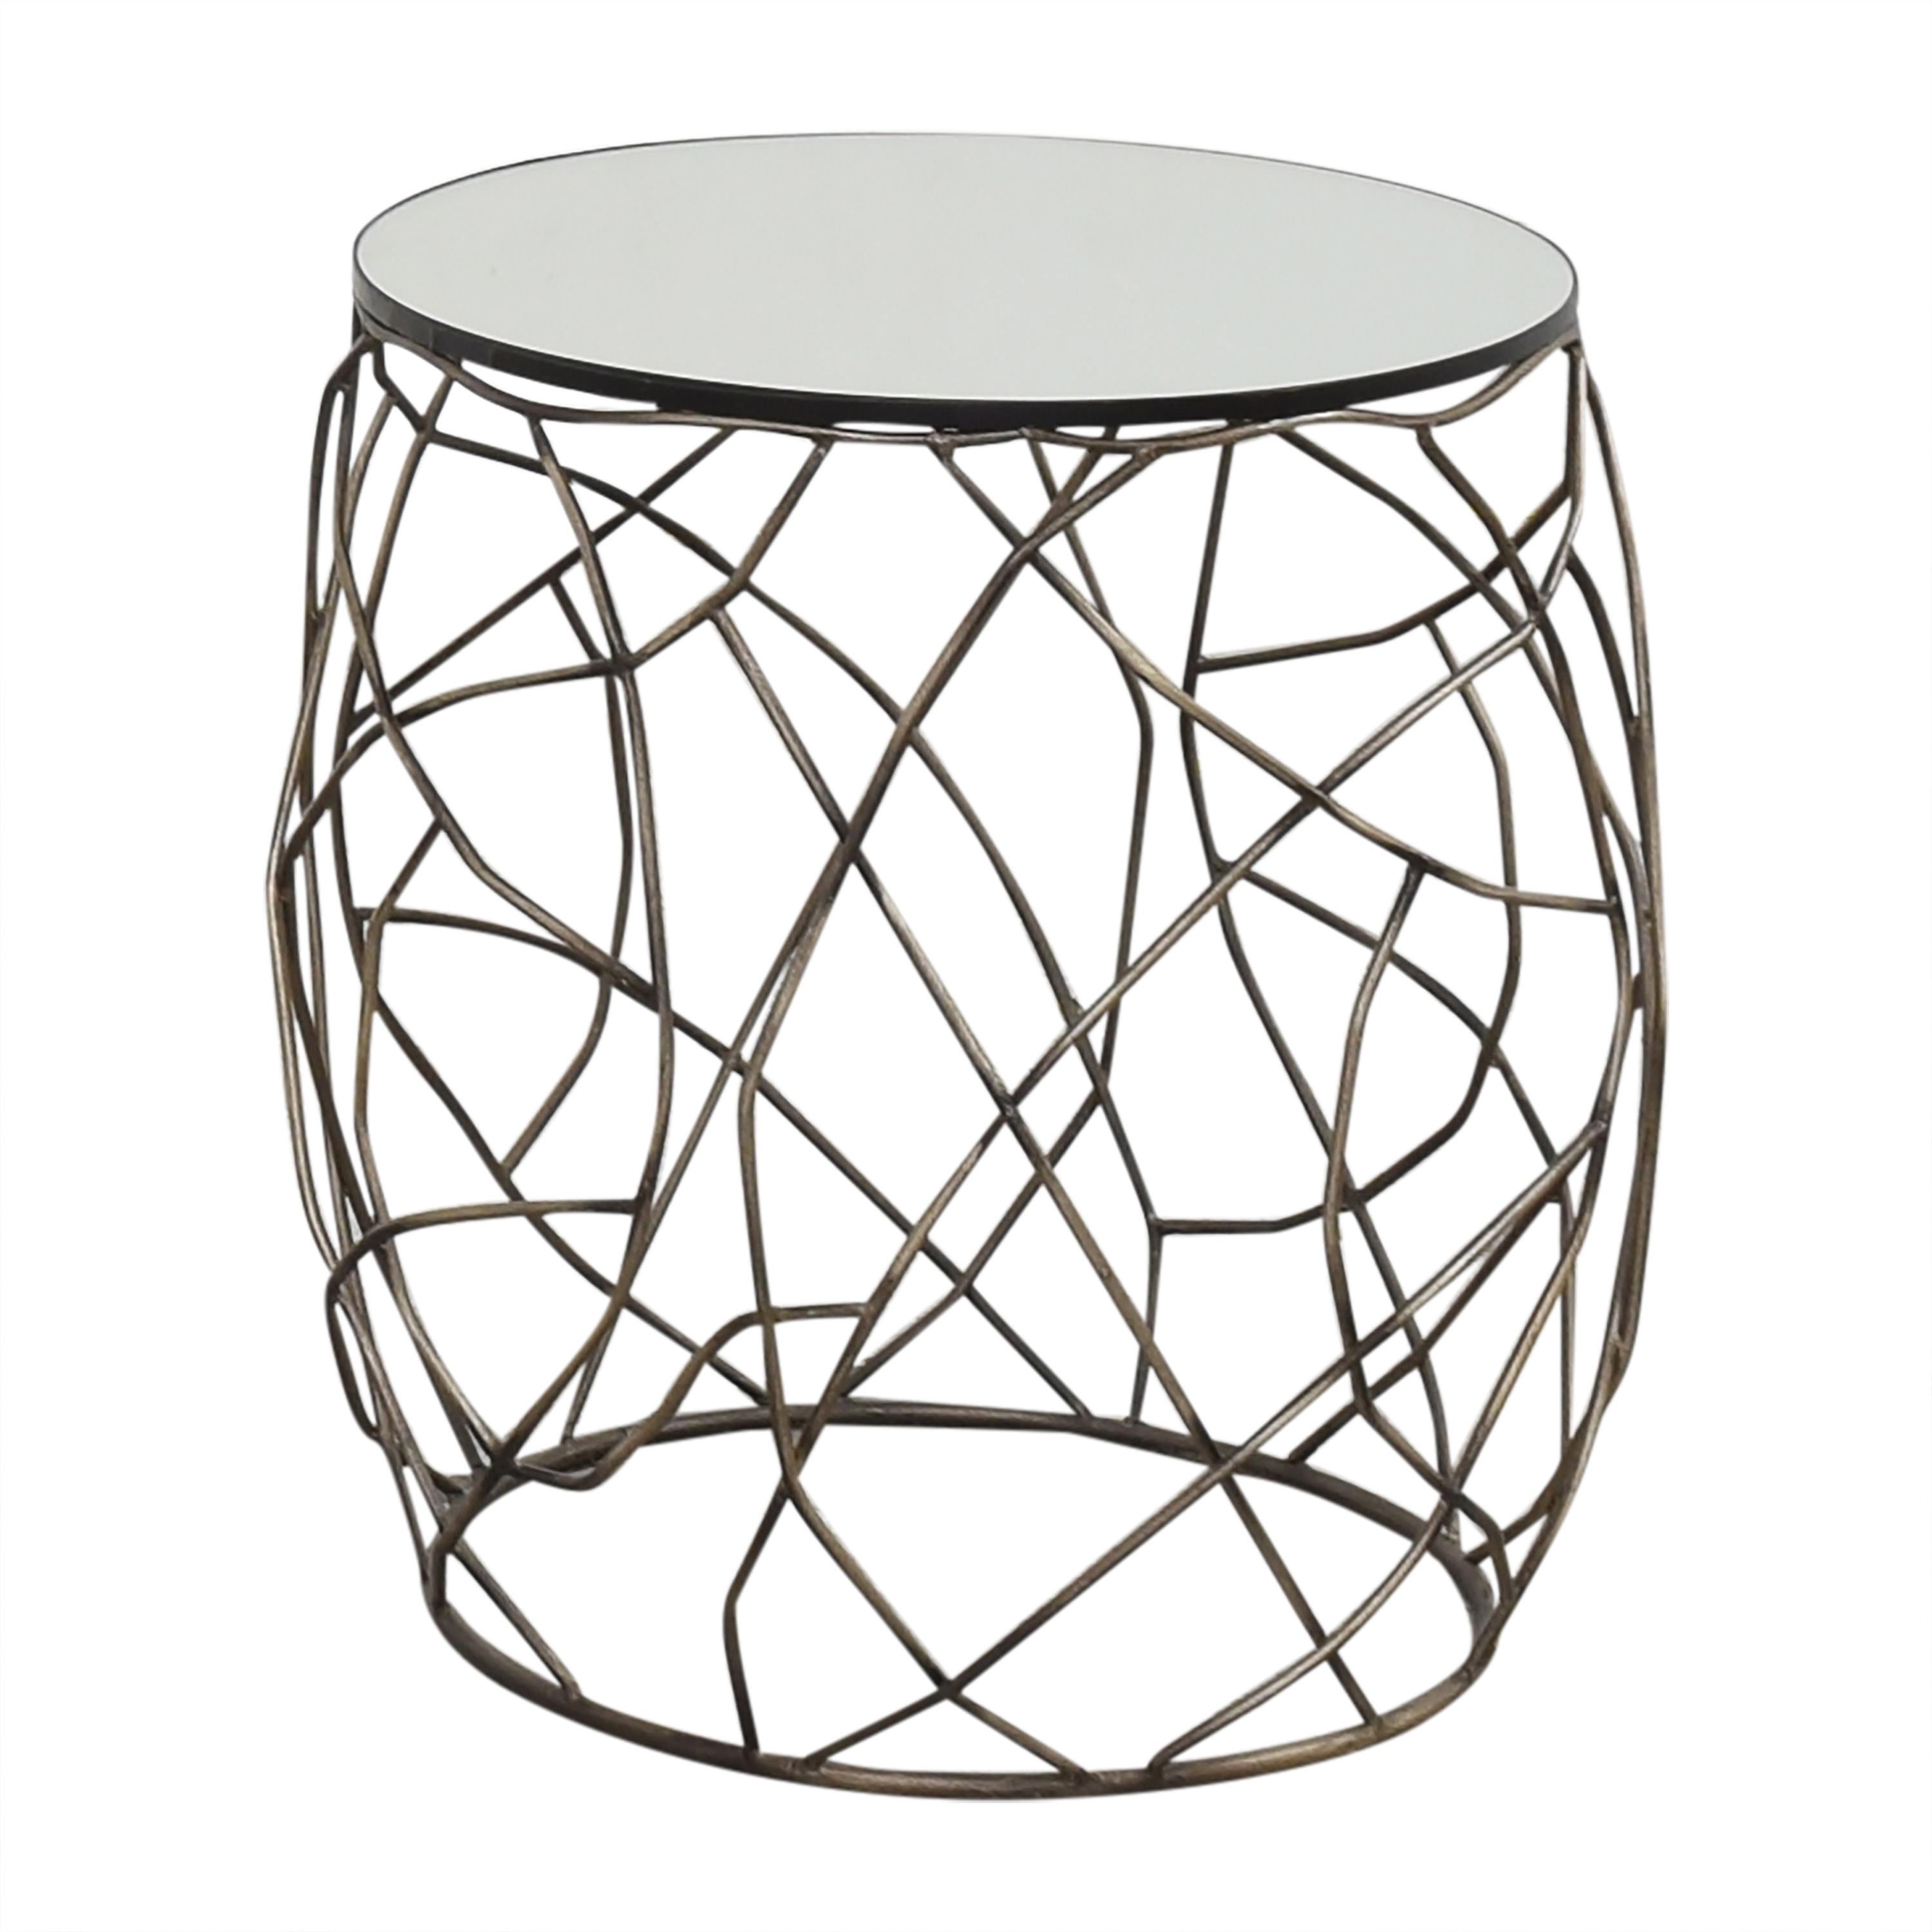 Horchow Horchow Rumi Openwork Side Table nj